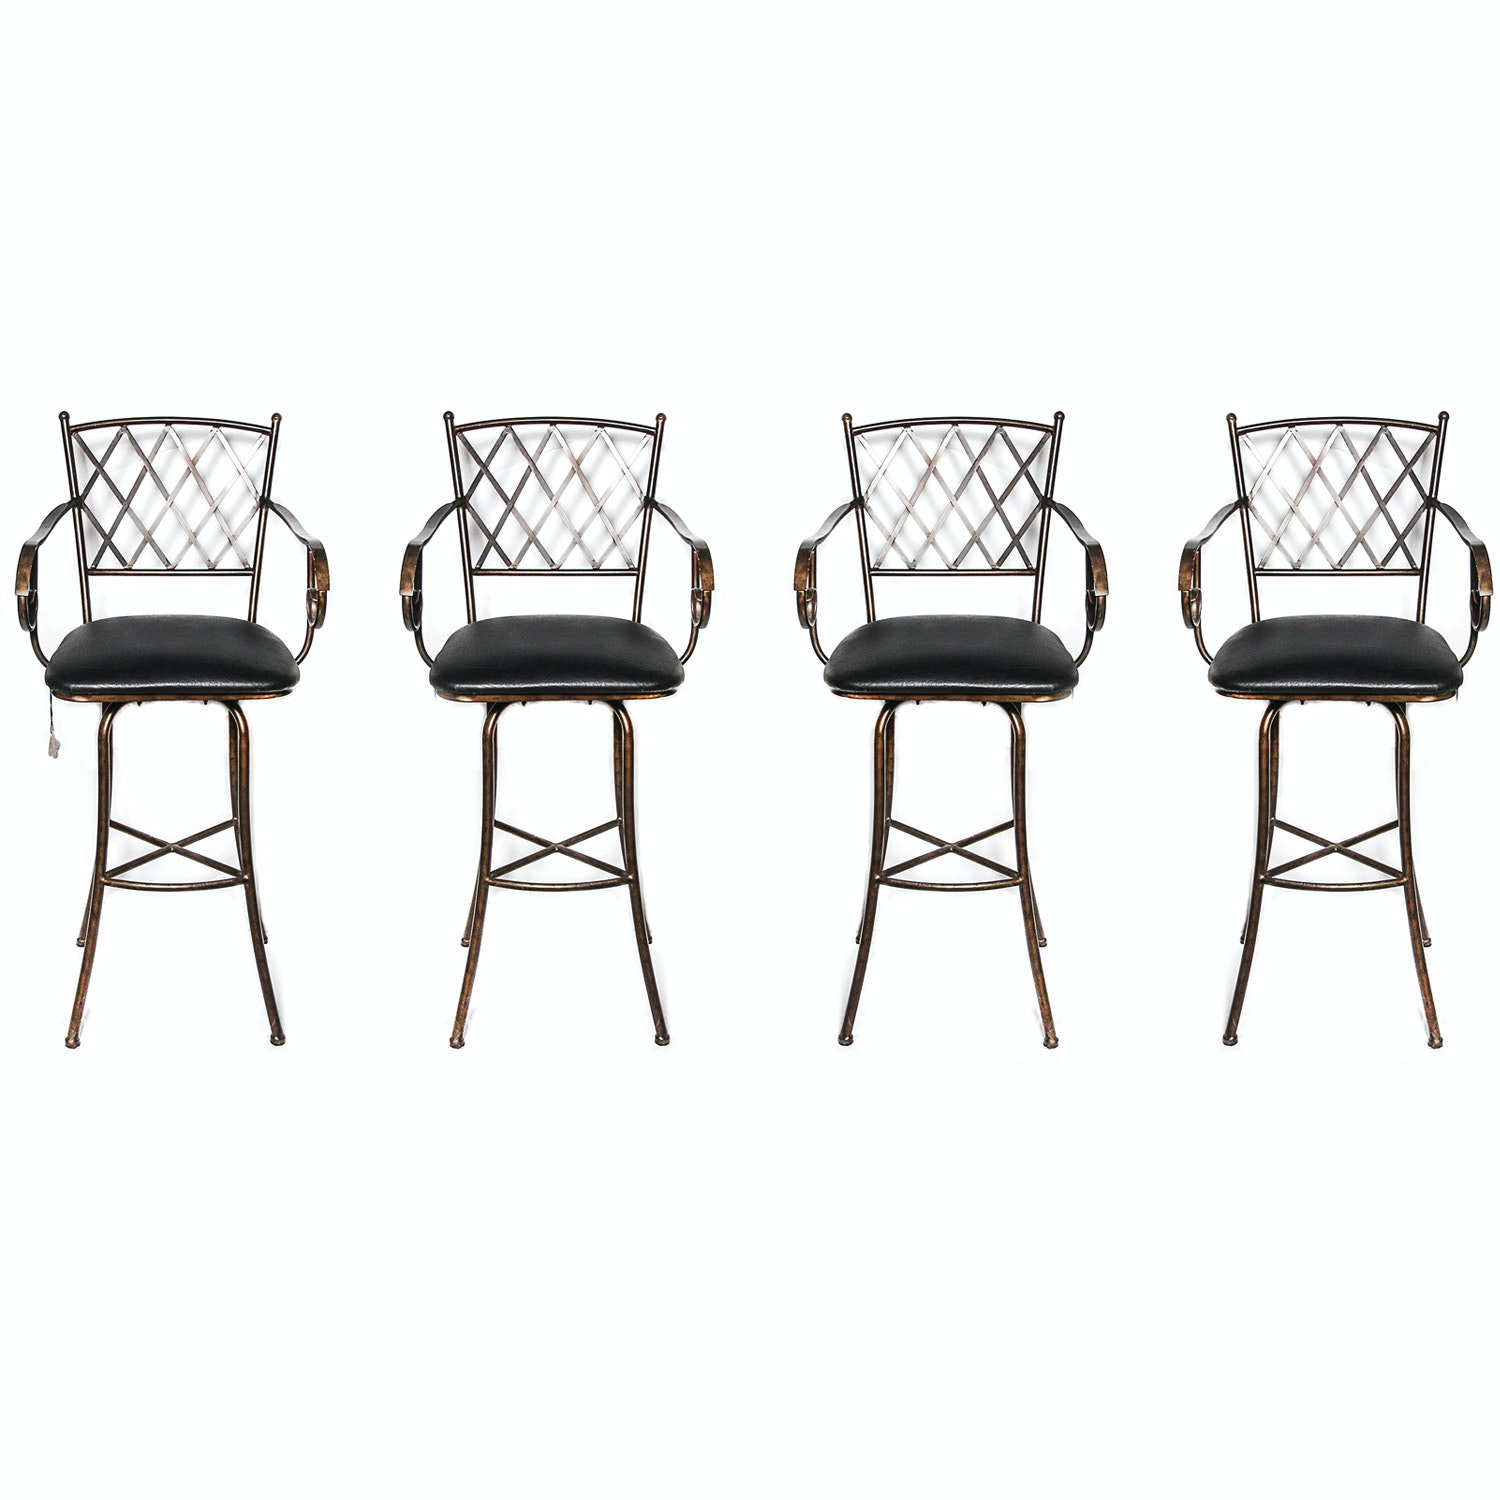 Set of Four Wrought Iron Style Barstools with Leather Upholstery